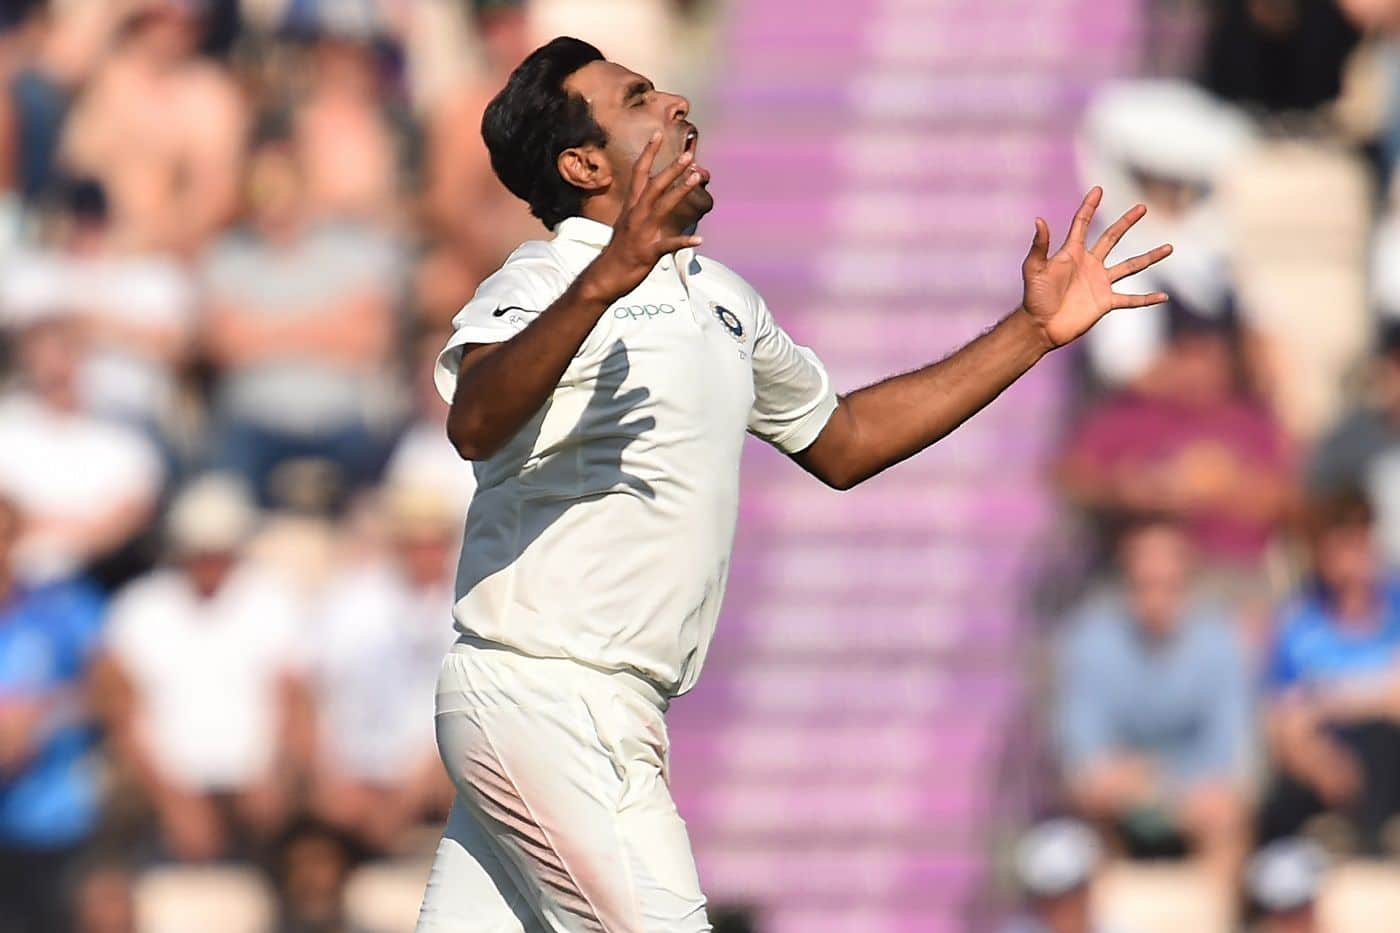 Was R Ashwin 100% fit at The Ageas Bowl?